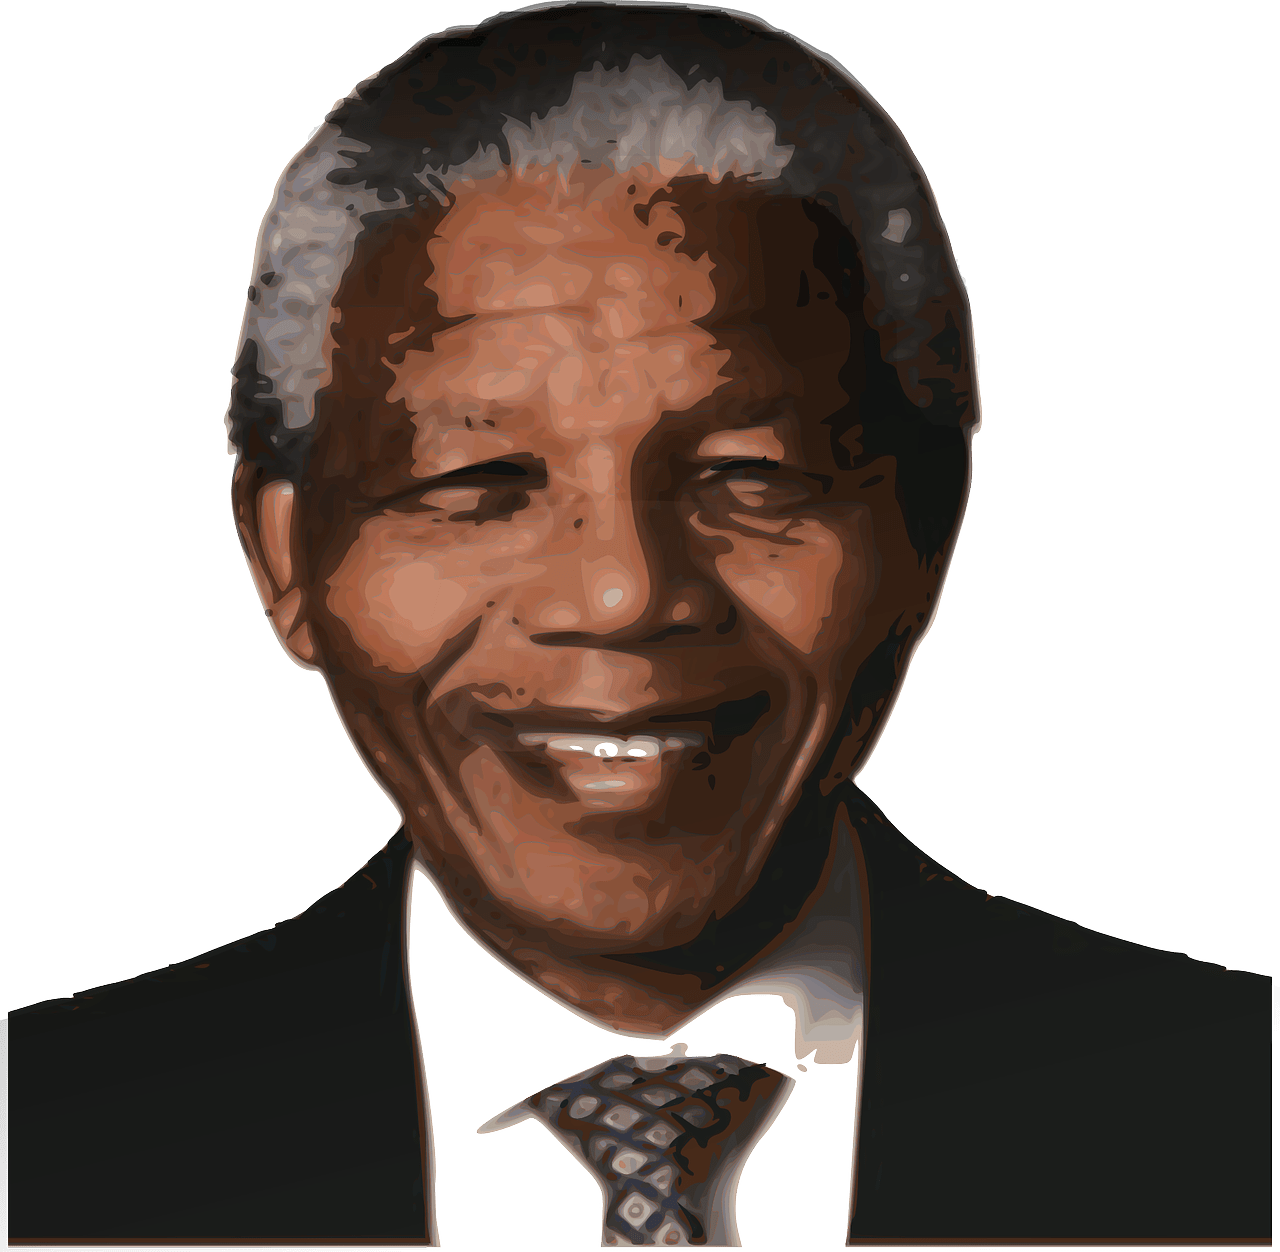 Nelson Mandela International Day Is On July 18th – Here Are Related Teaching & Learning Resources